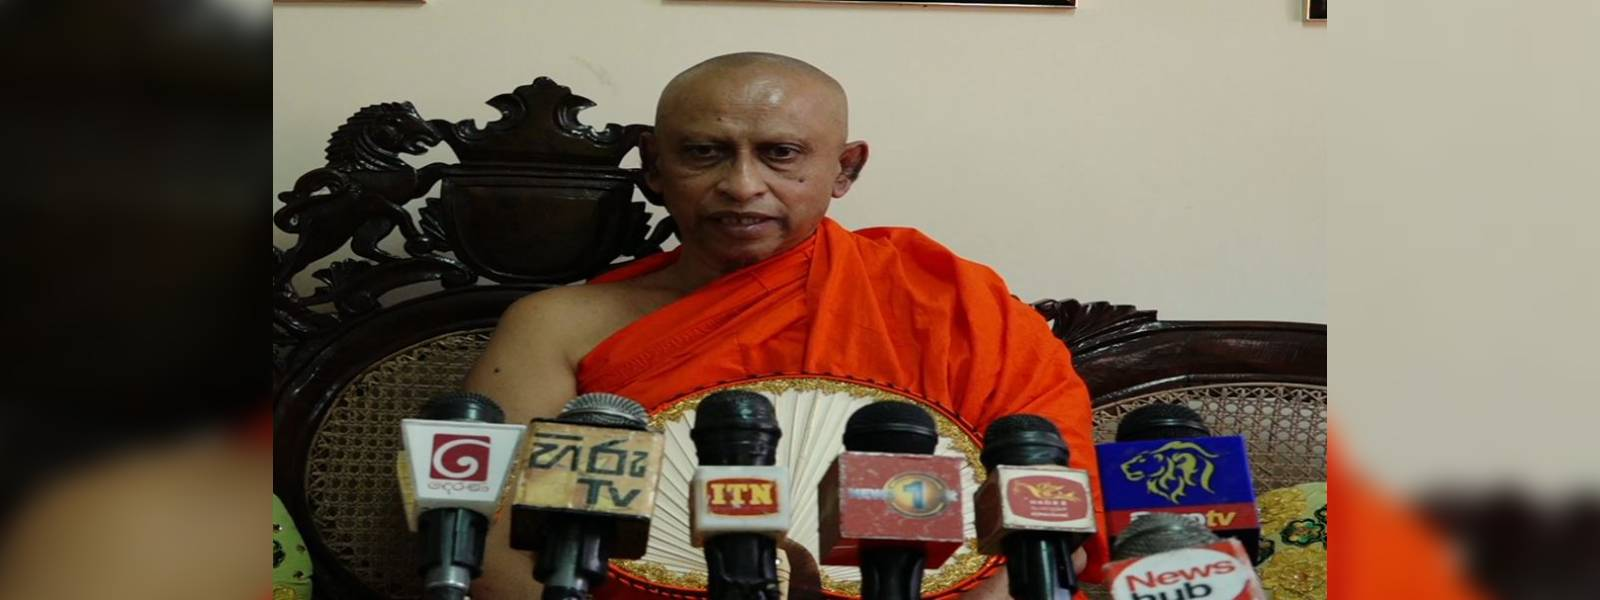 Anunayake Theros seek public support to combat COVID – 19